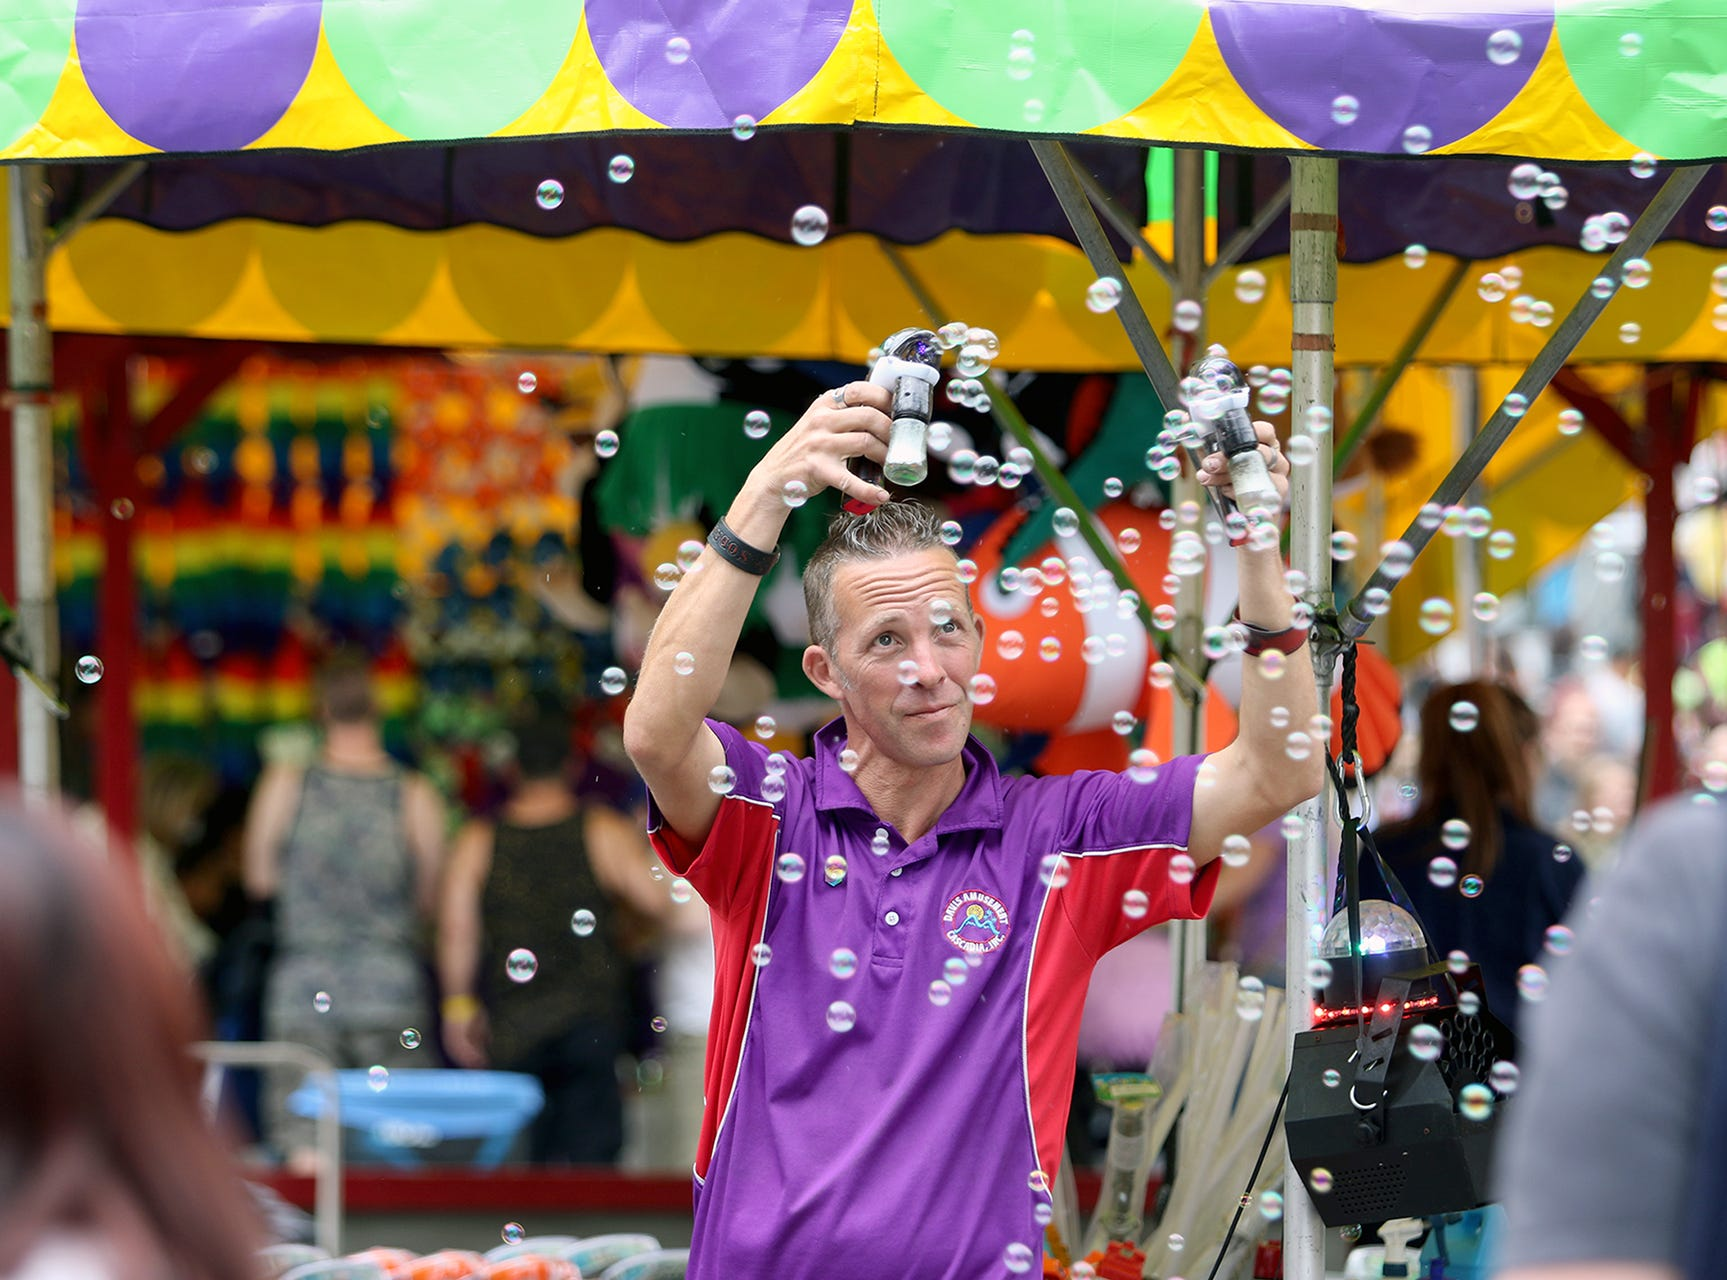 Bubbles on the Midway at the Kitsap County Fair & Stampede on Friday, August 24, 2018 at the Kitsap County Fairgrounds.